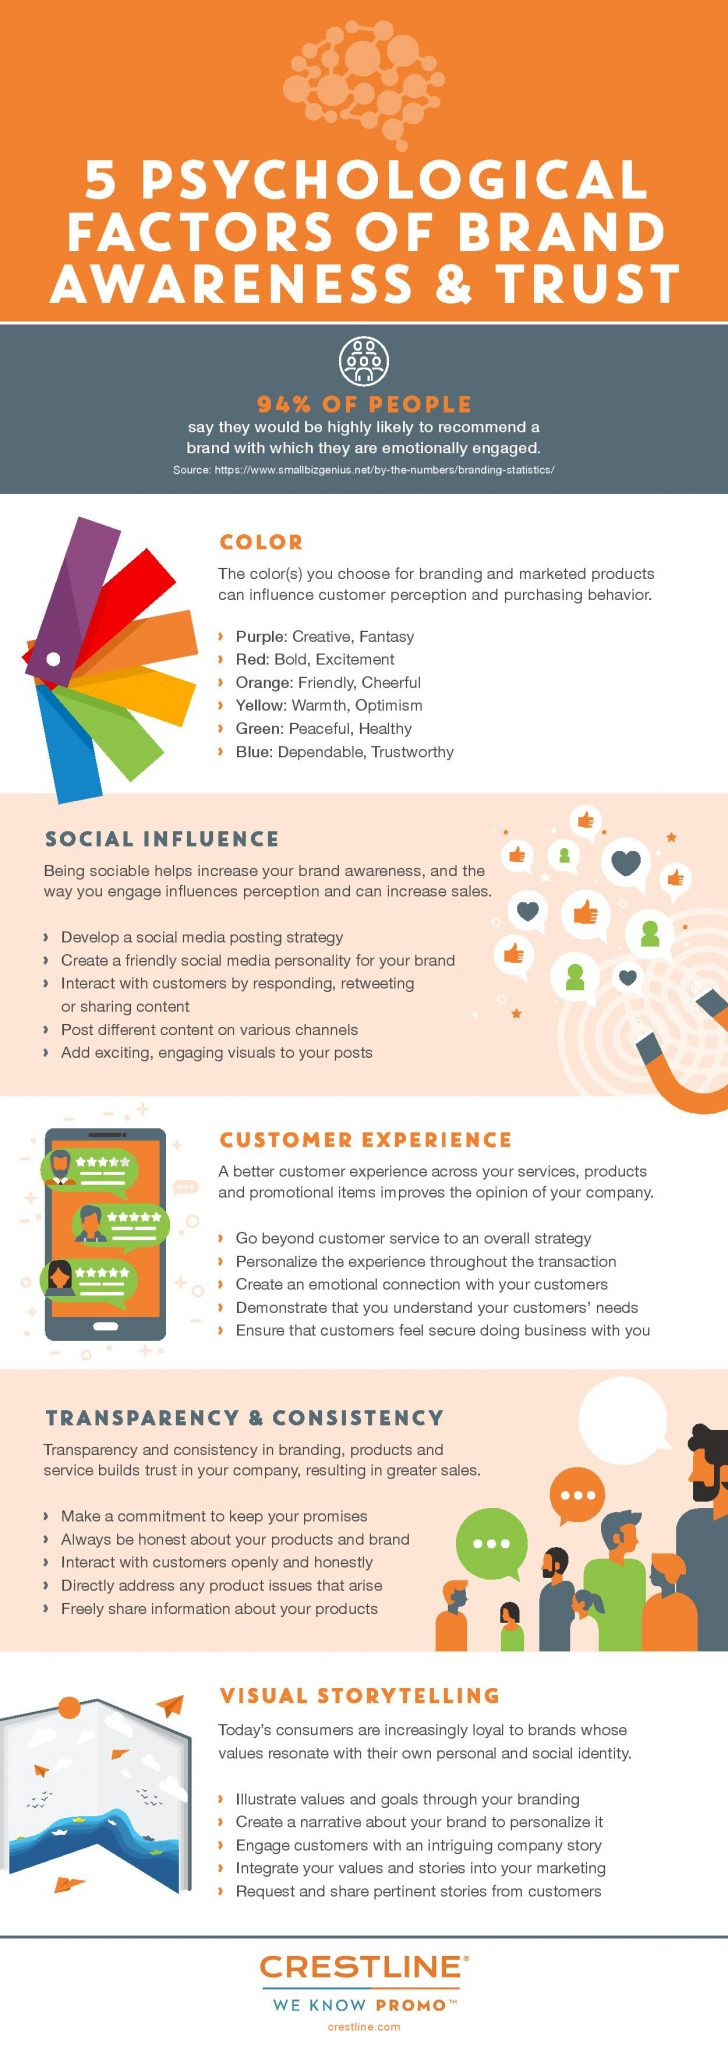 5 Psychological Factors of Brand Awareness and Trust Infographic by Crestline Infographic